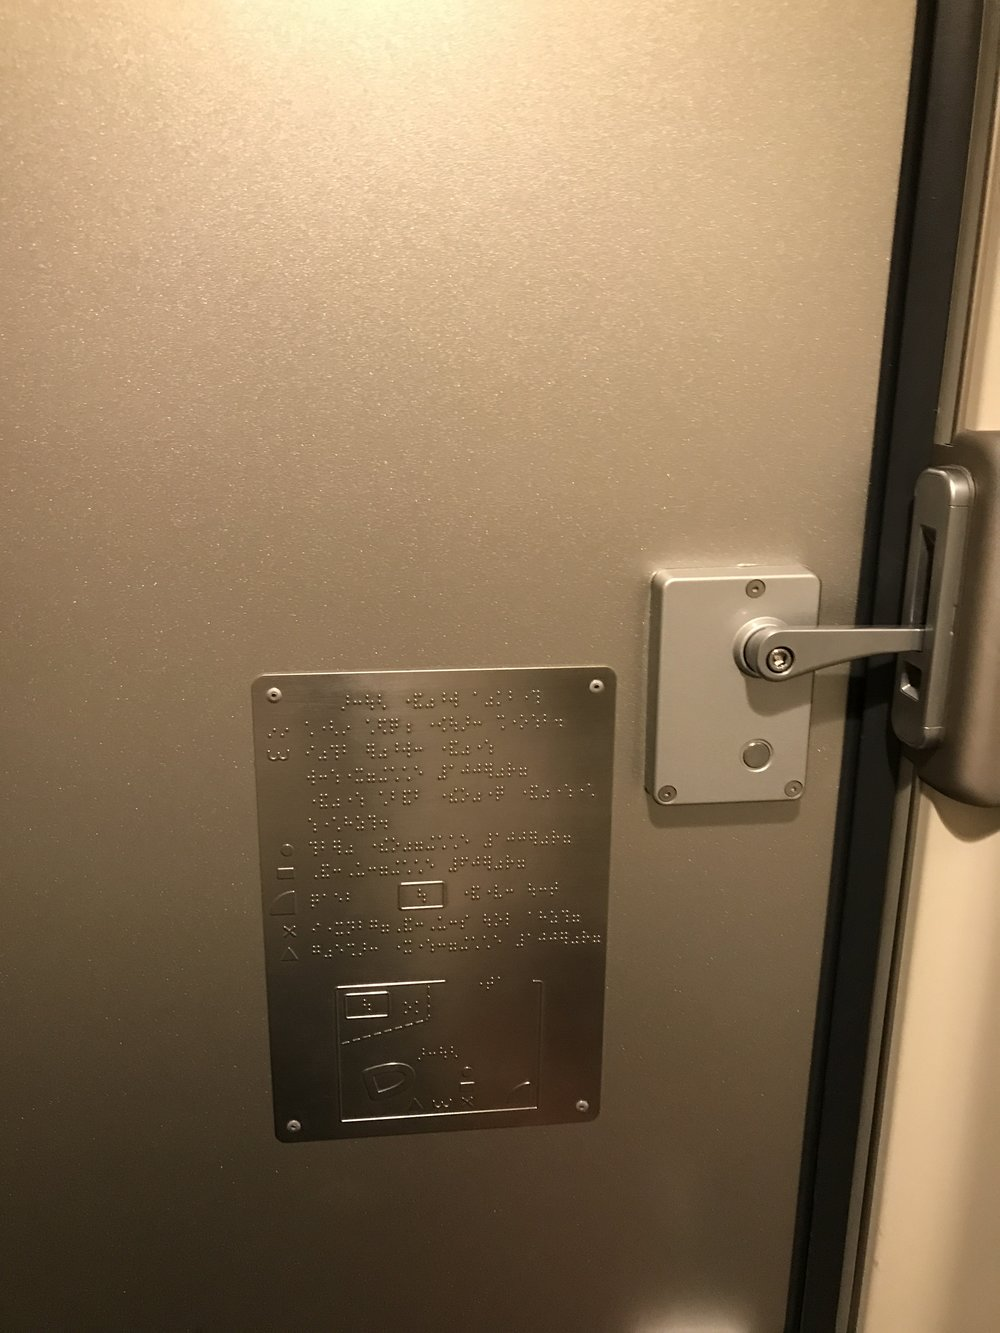 Instructions in braille in Shinkansen washroom